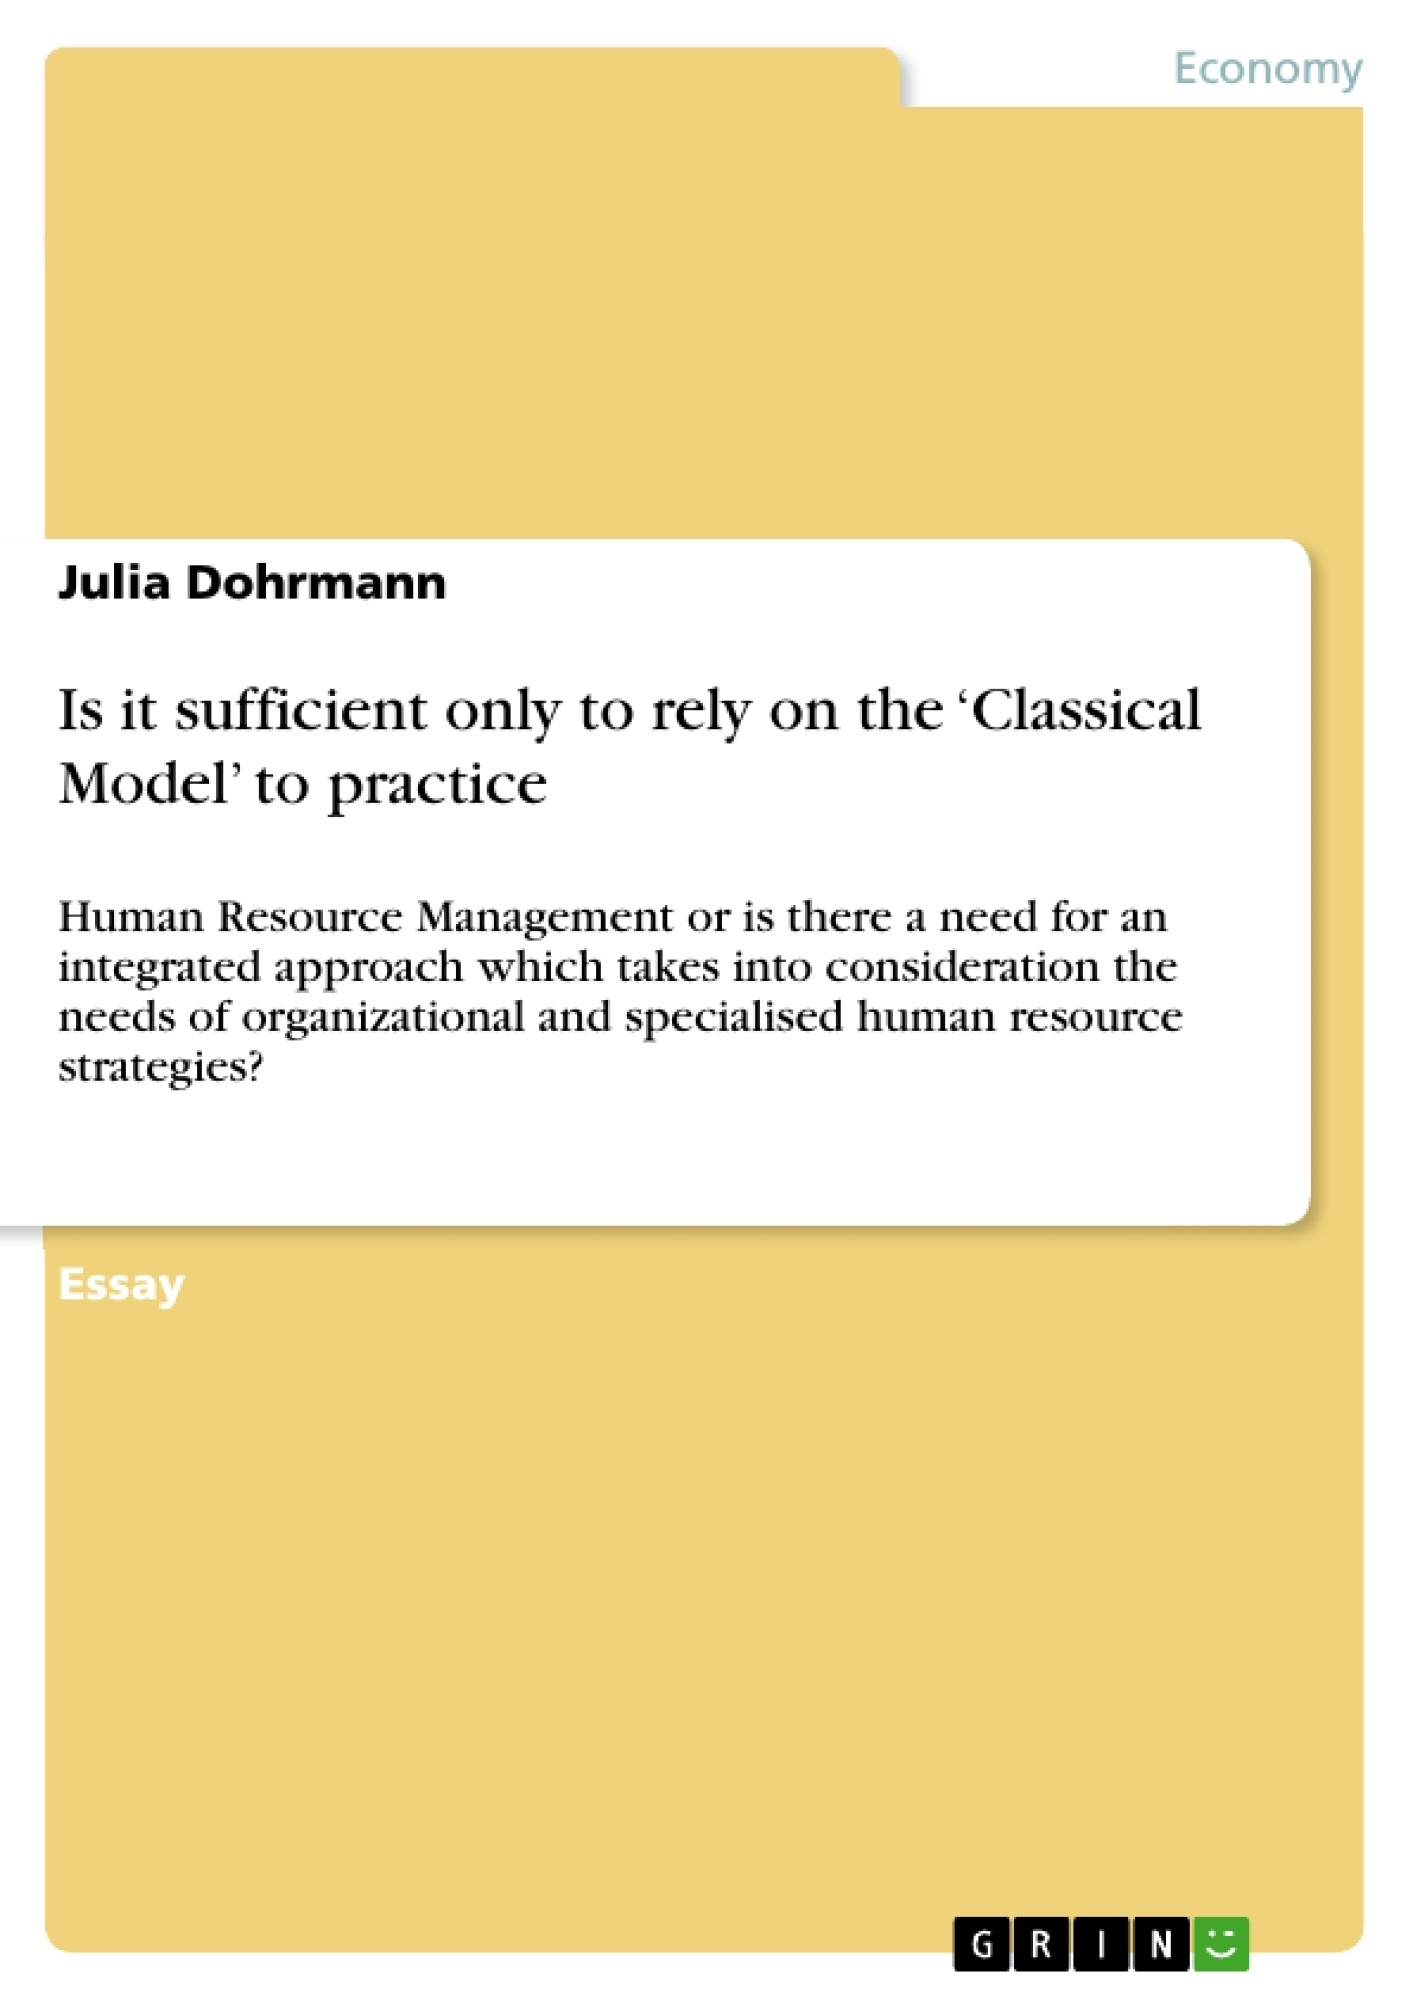 Title: Is it sufficient only to rely on the 'Classical Model' to practice